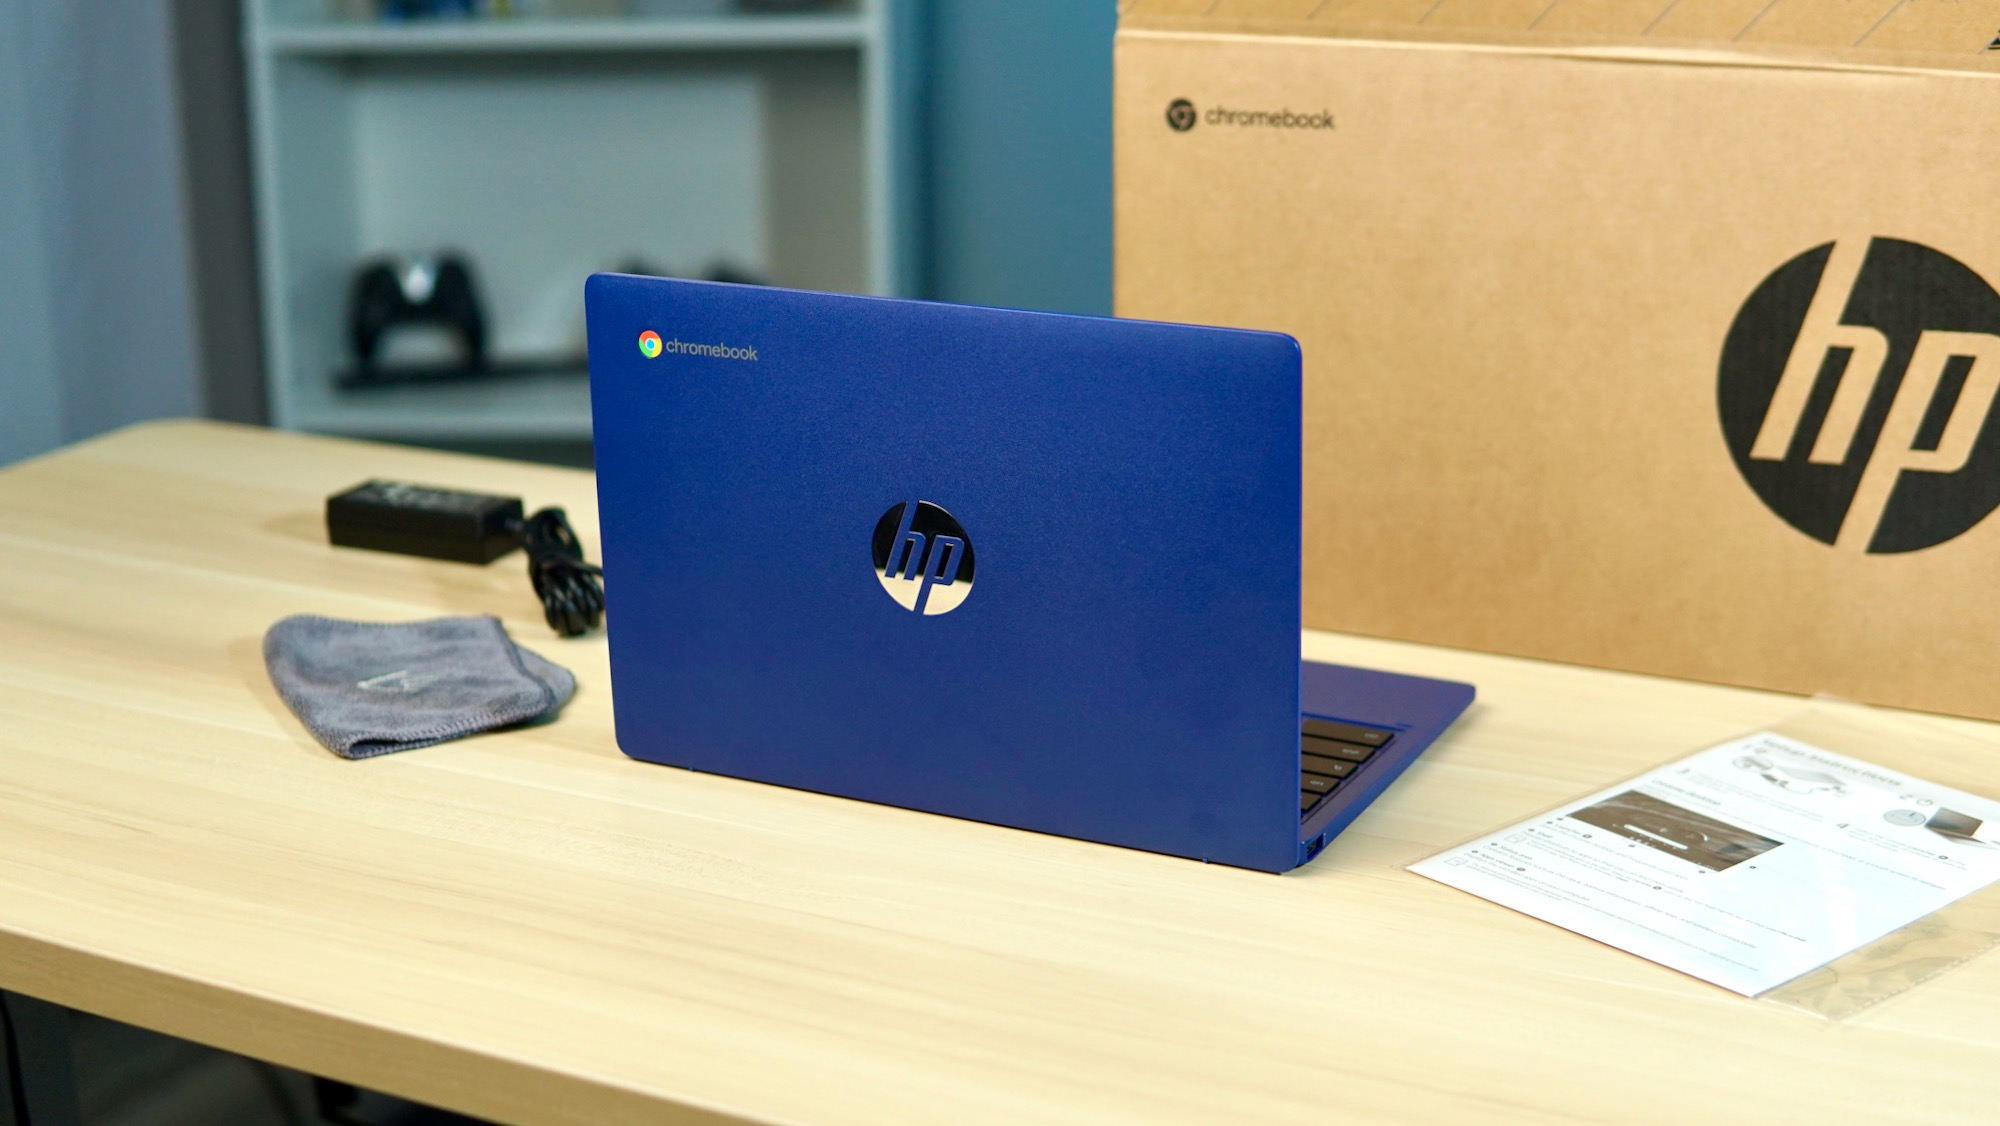 Unboxing and mini-review of the very affordable HP Chromebook 11a